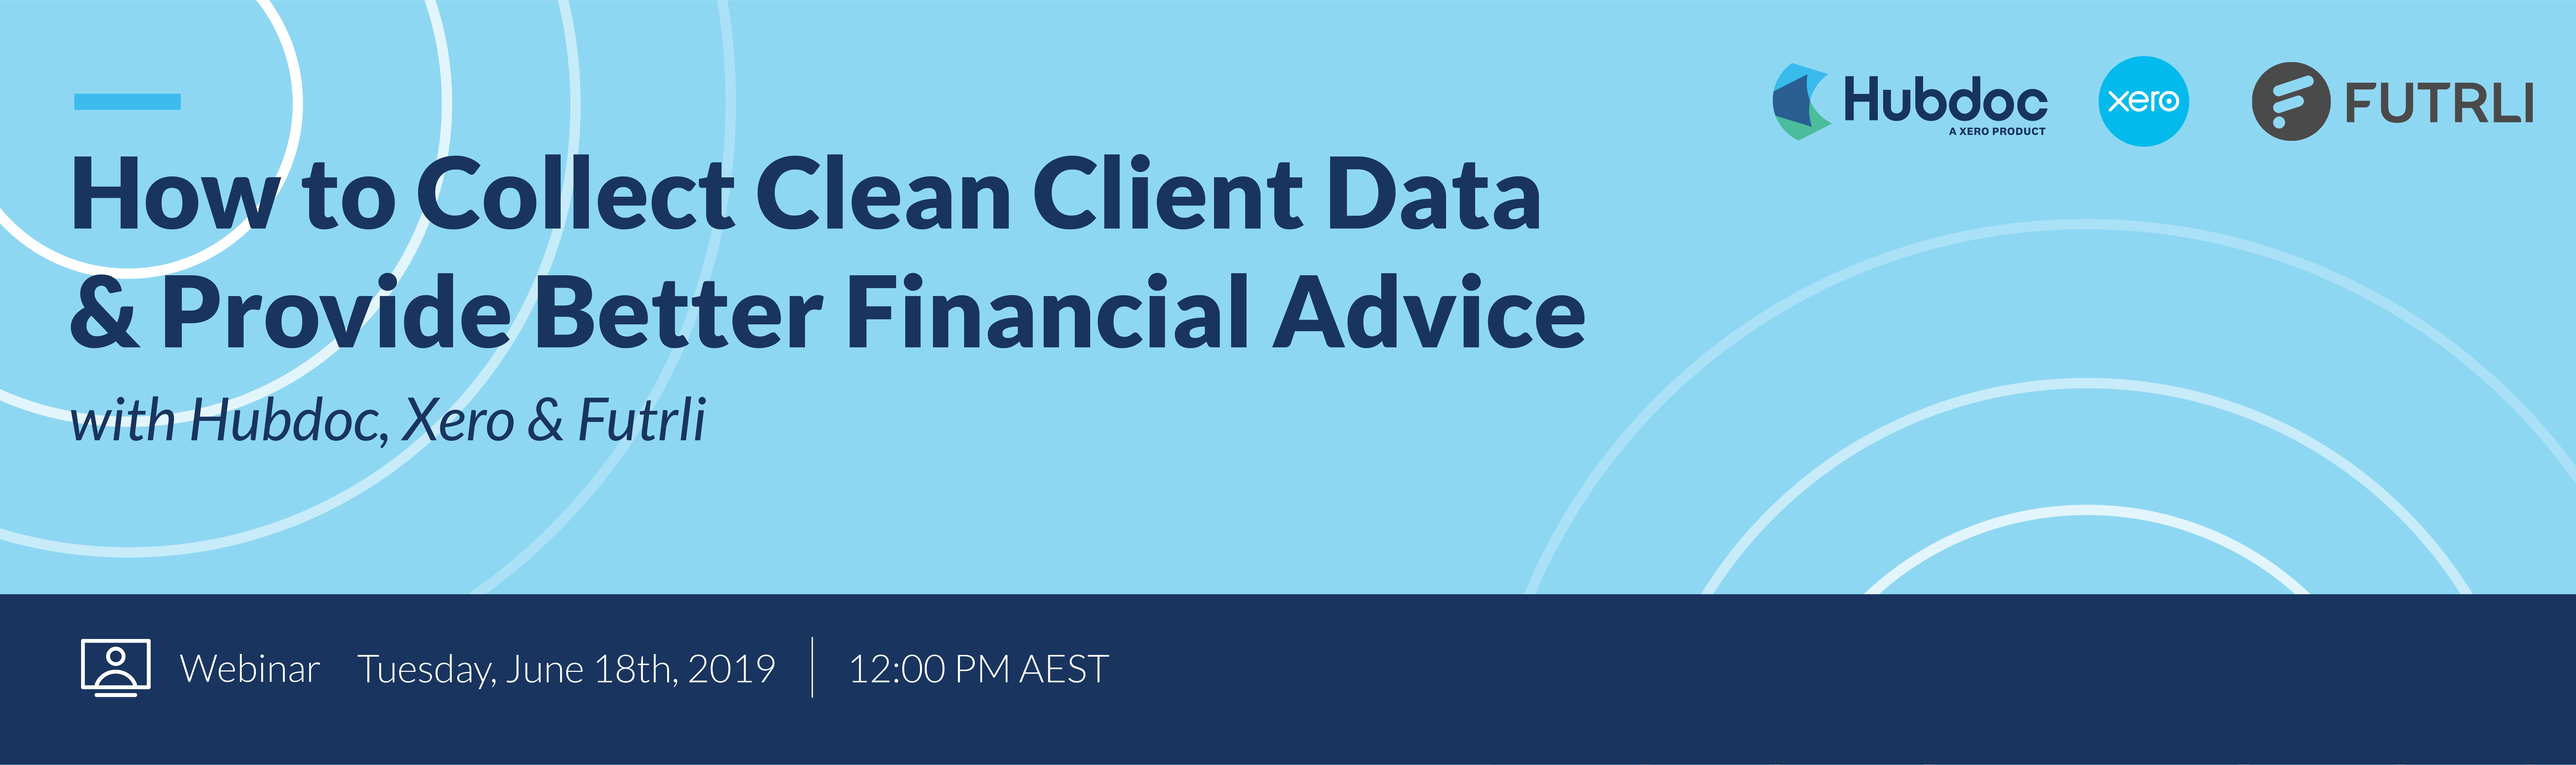 Webinar: How to Collect Clean Client Data & Provide Better Financial Advice